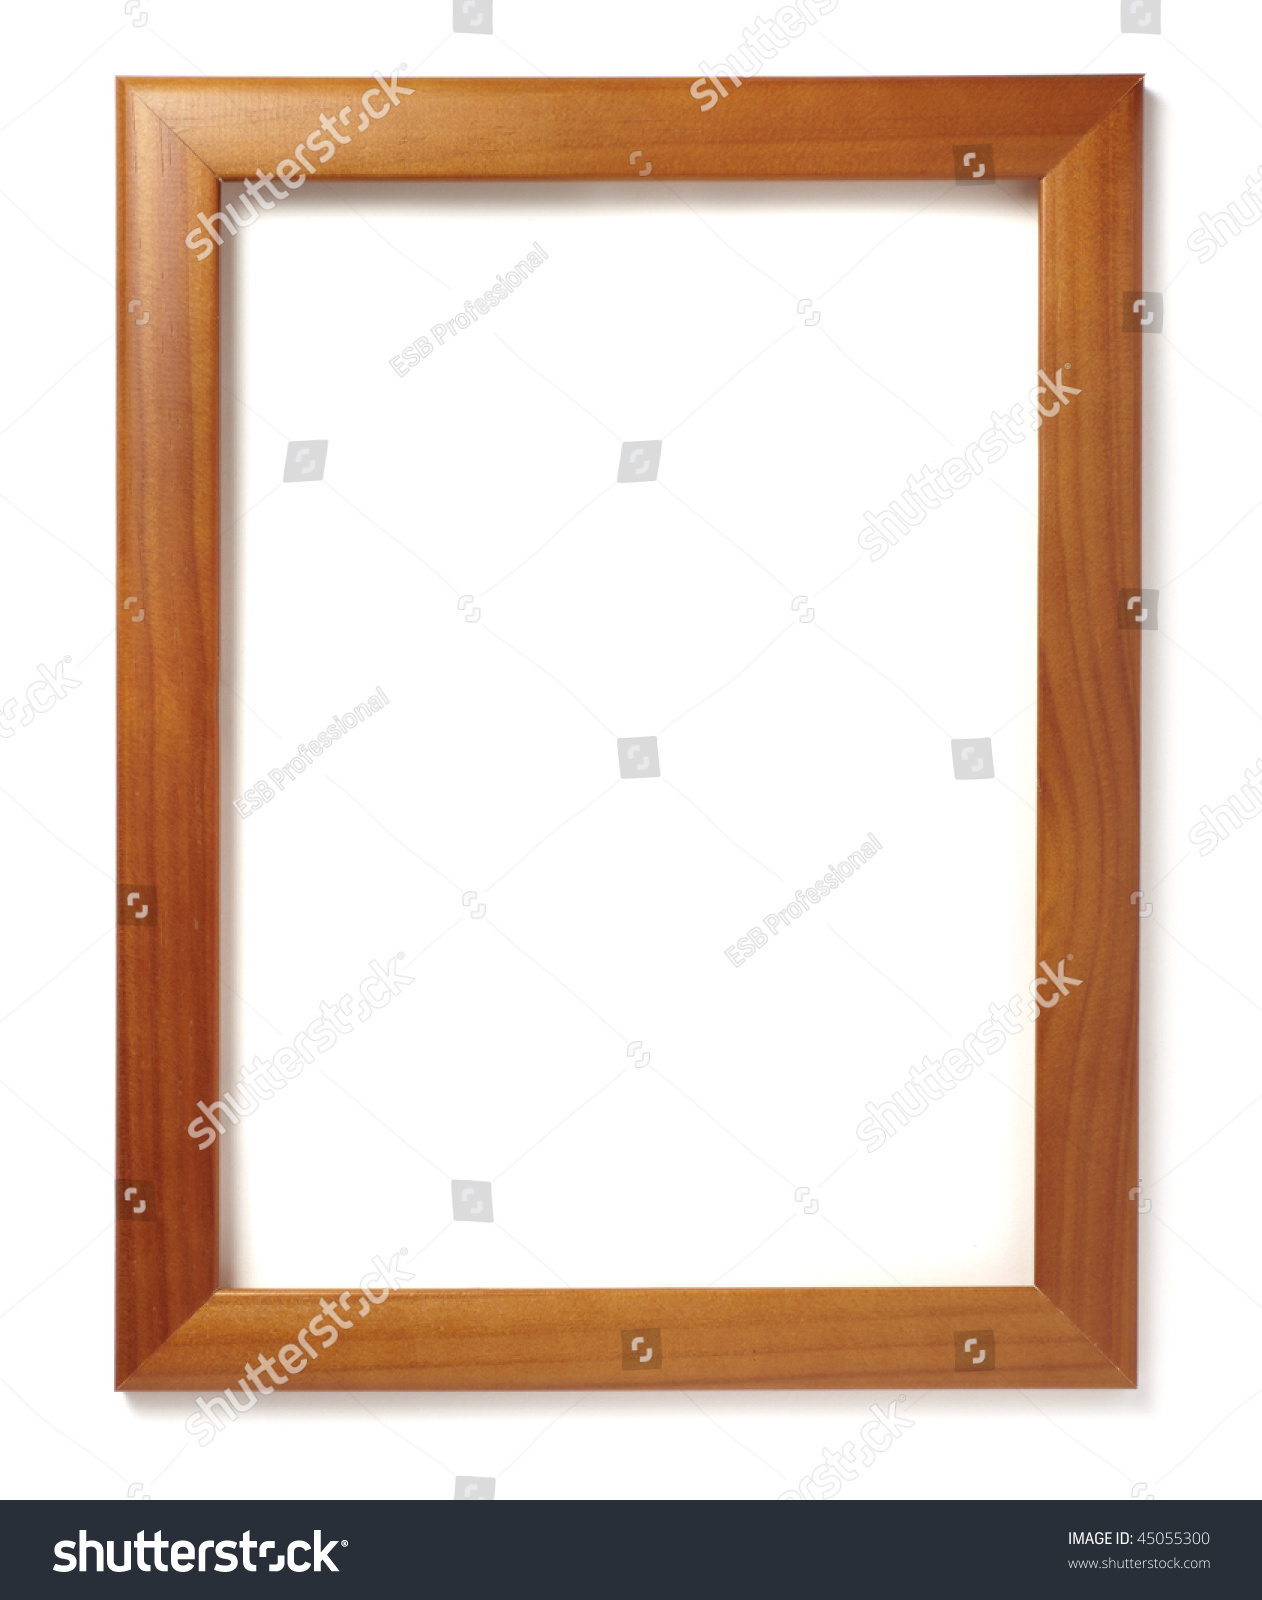 Wooden Frame Painting Picture On White Stock Photo (Royalty Free ...